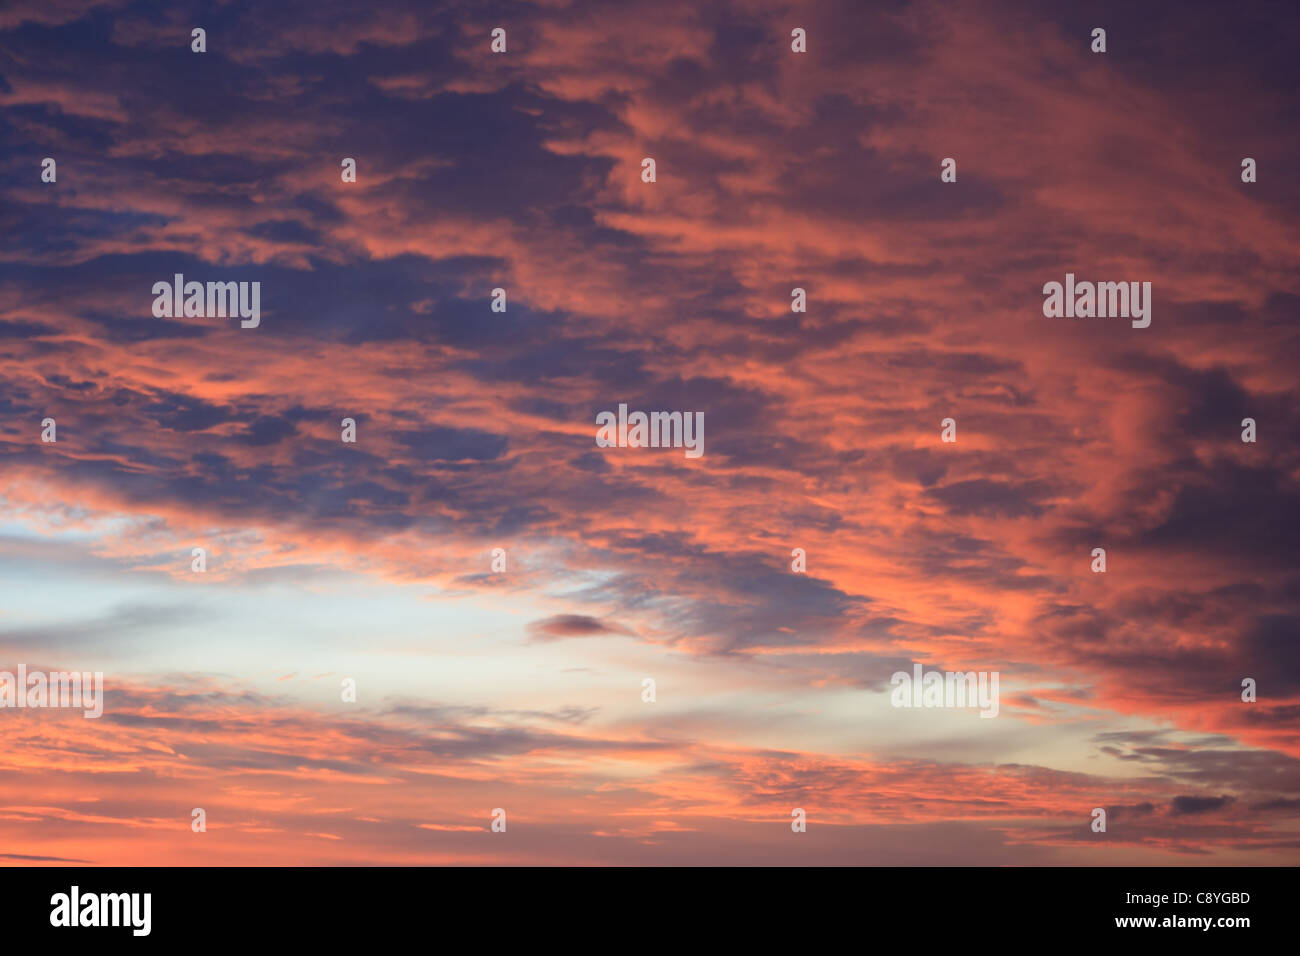 Red sunset - Stock Image